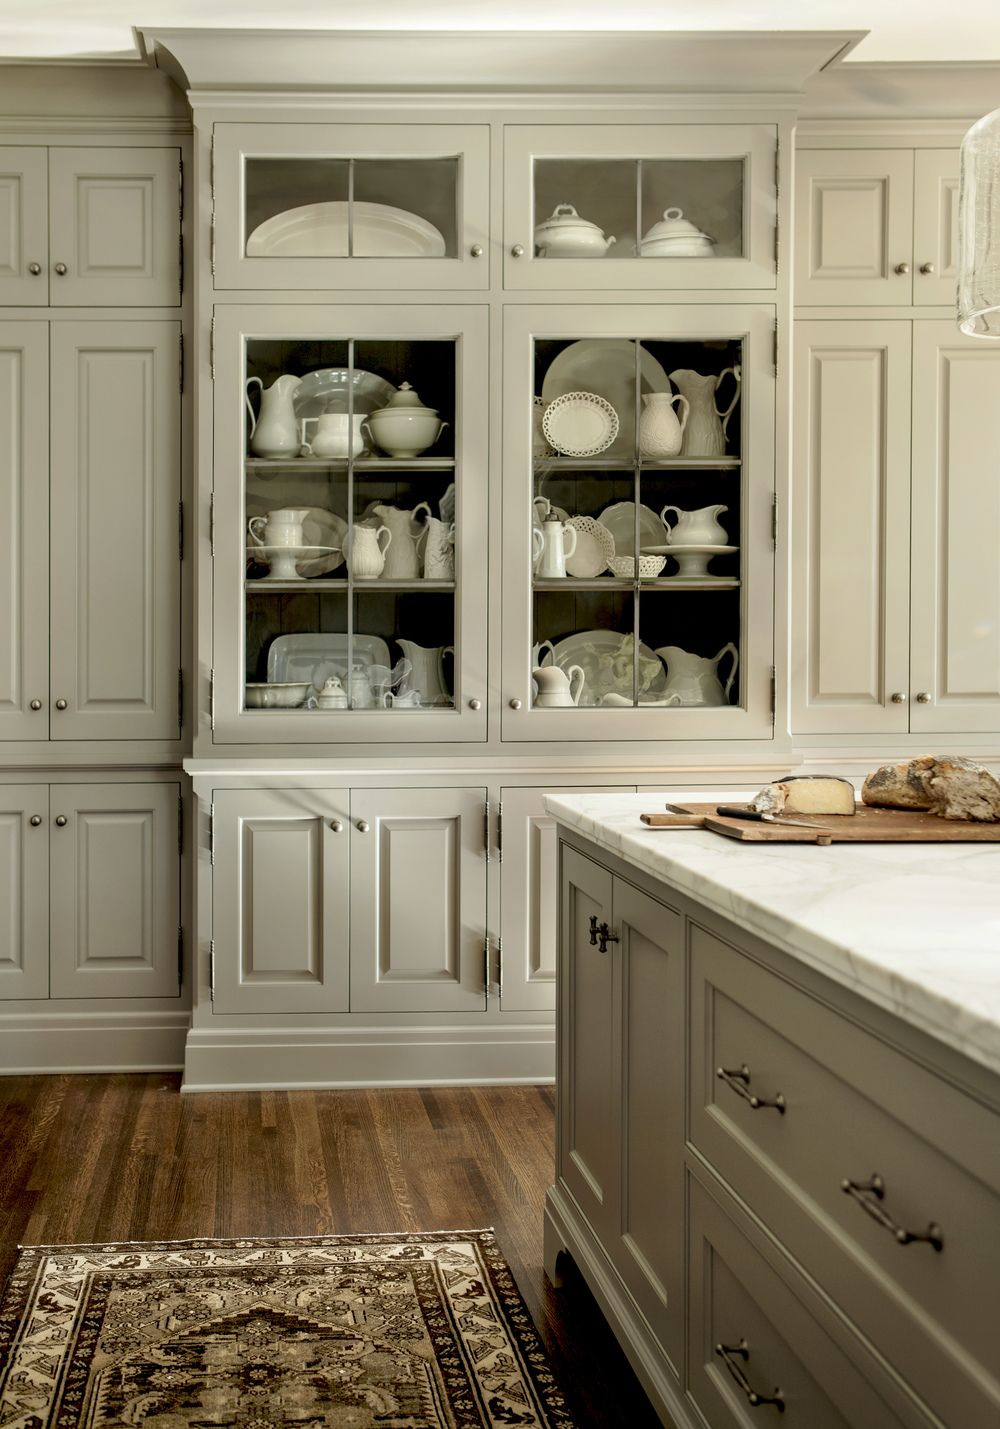 Kitchens workbook feature cabinet color barbara westbrook designer